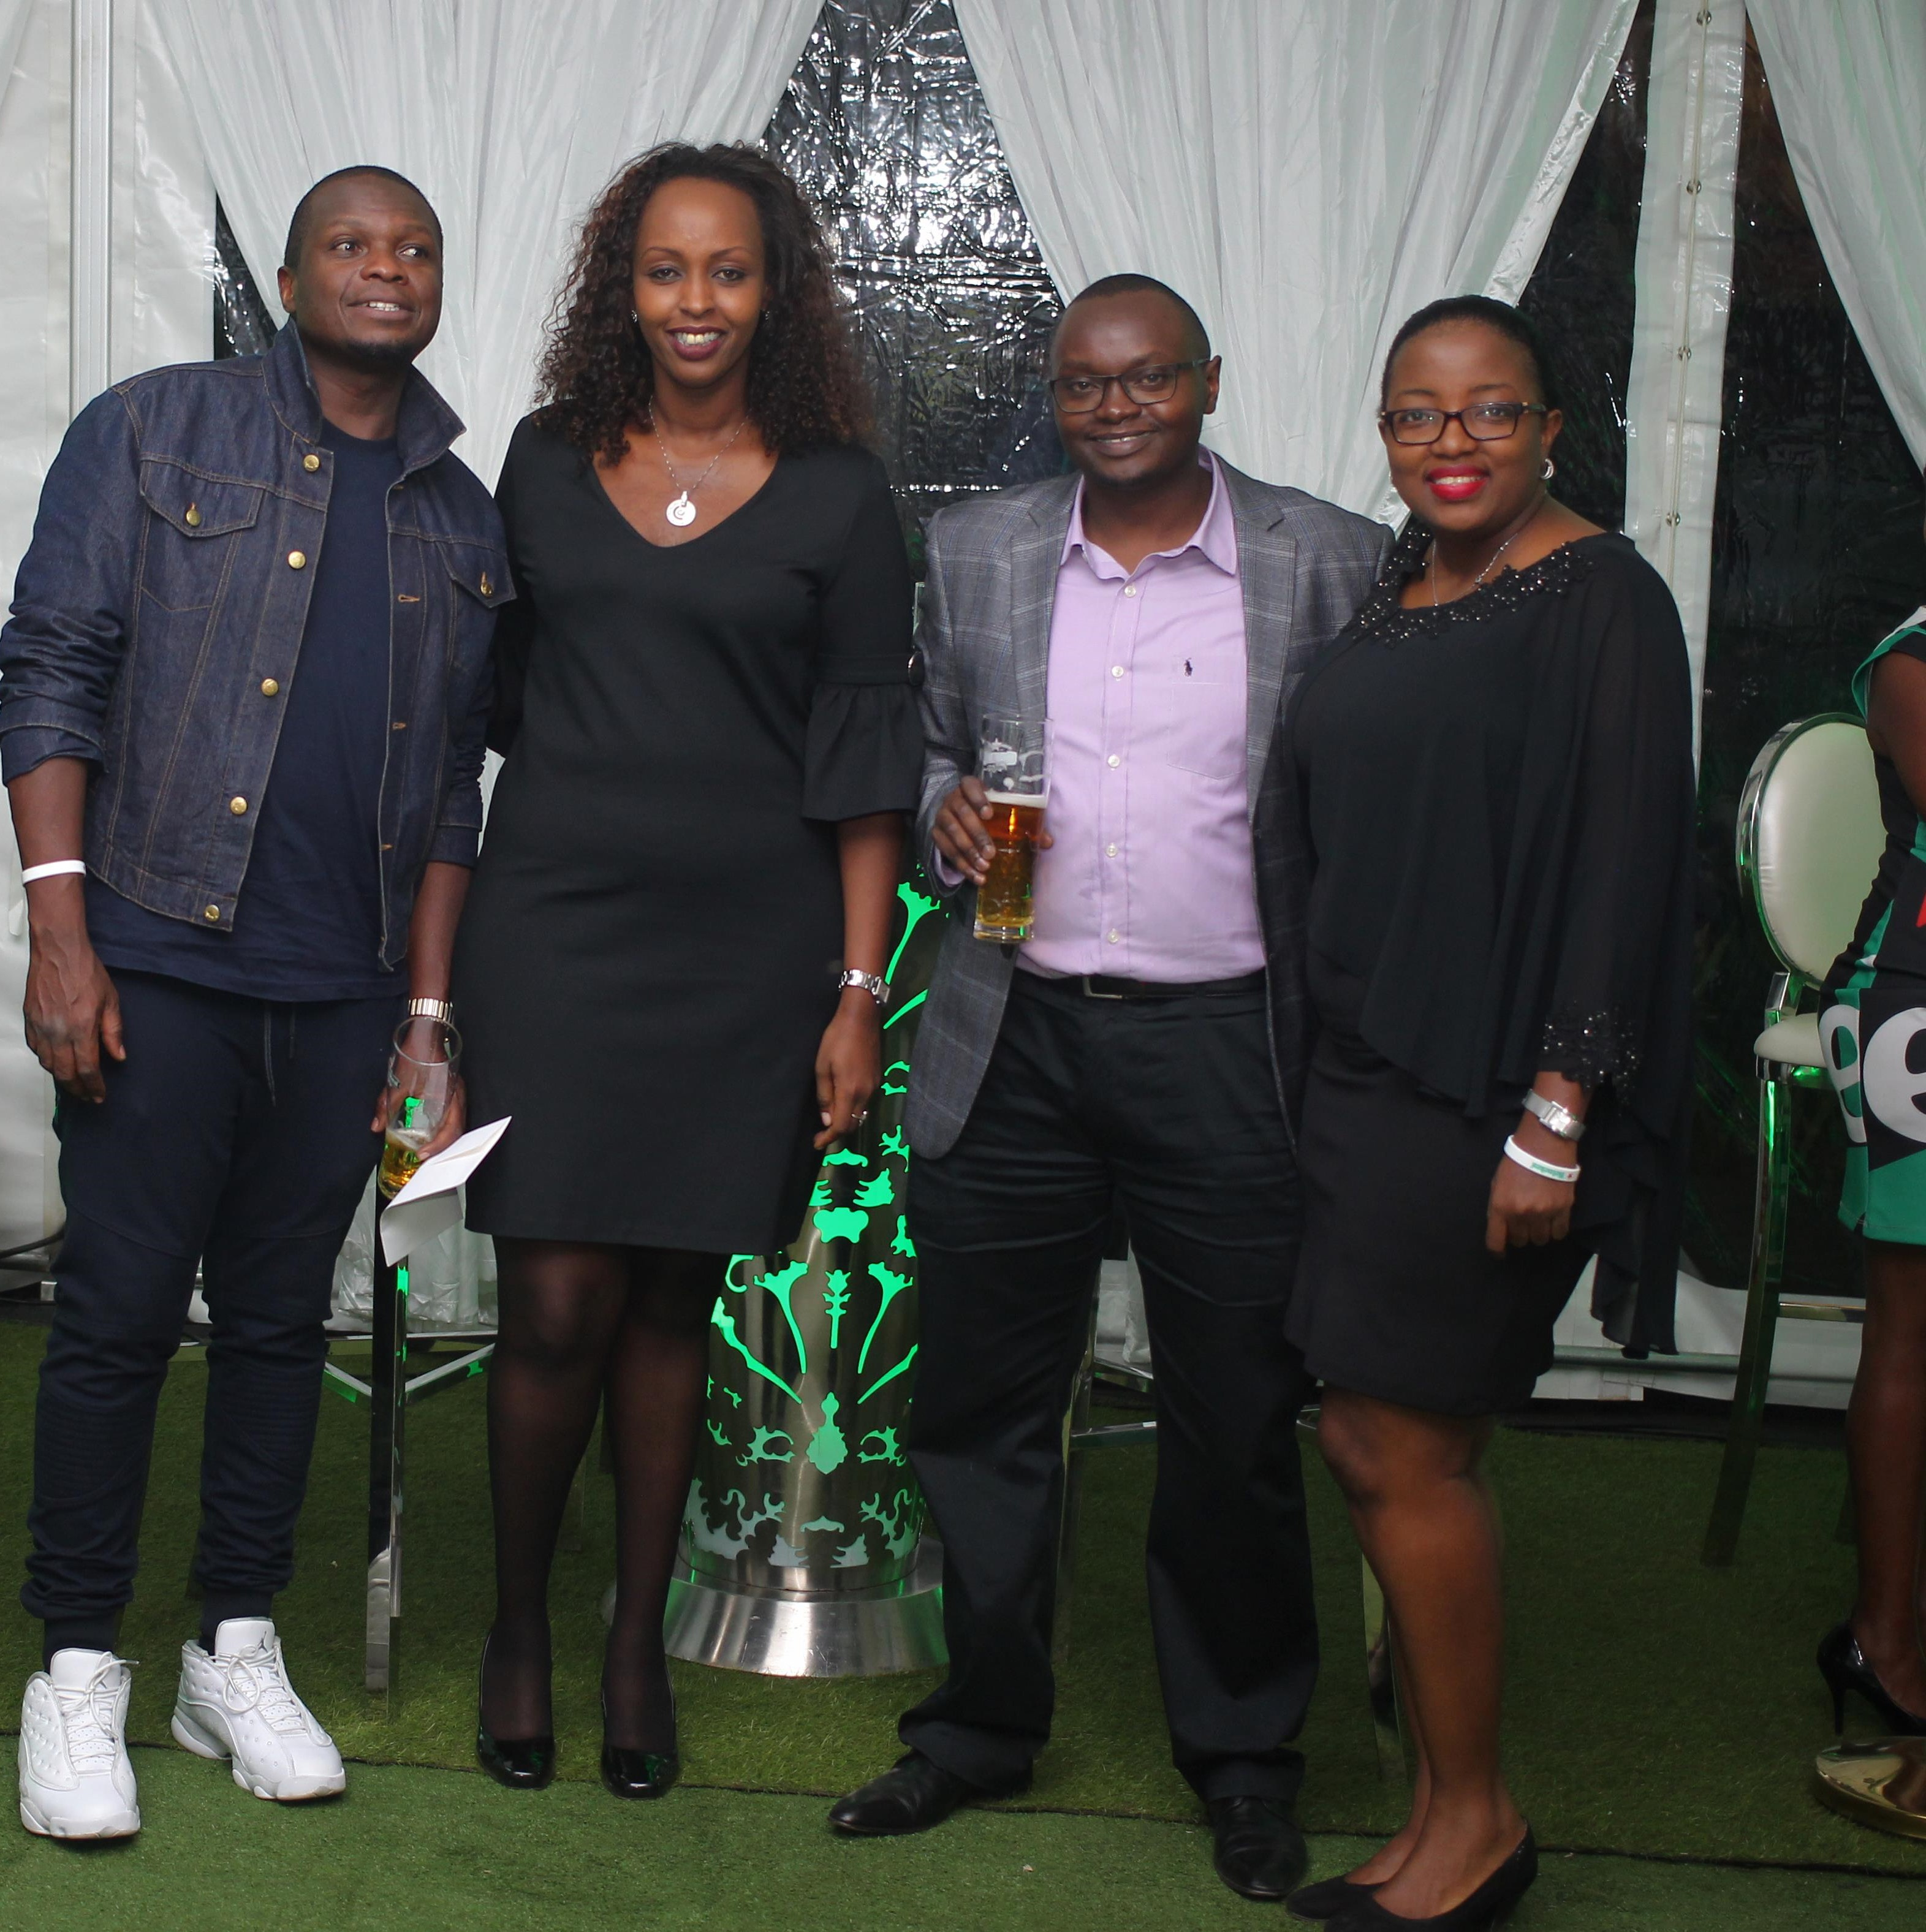 George Lutta Director 1824, Heineken Sales Capability Operations Manager Nina Ndabaneze, Finance Manager Charles Waweru and Marketing Manager East Africa Njeri Mburu all smiles.